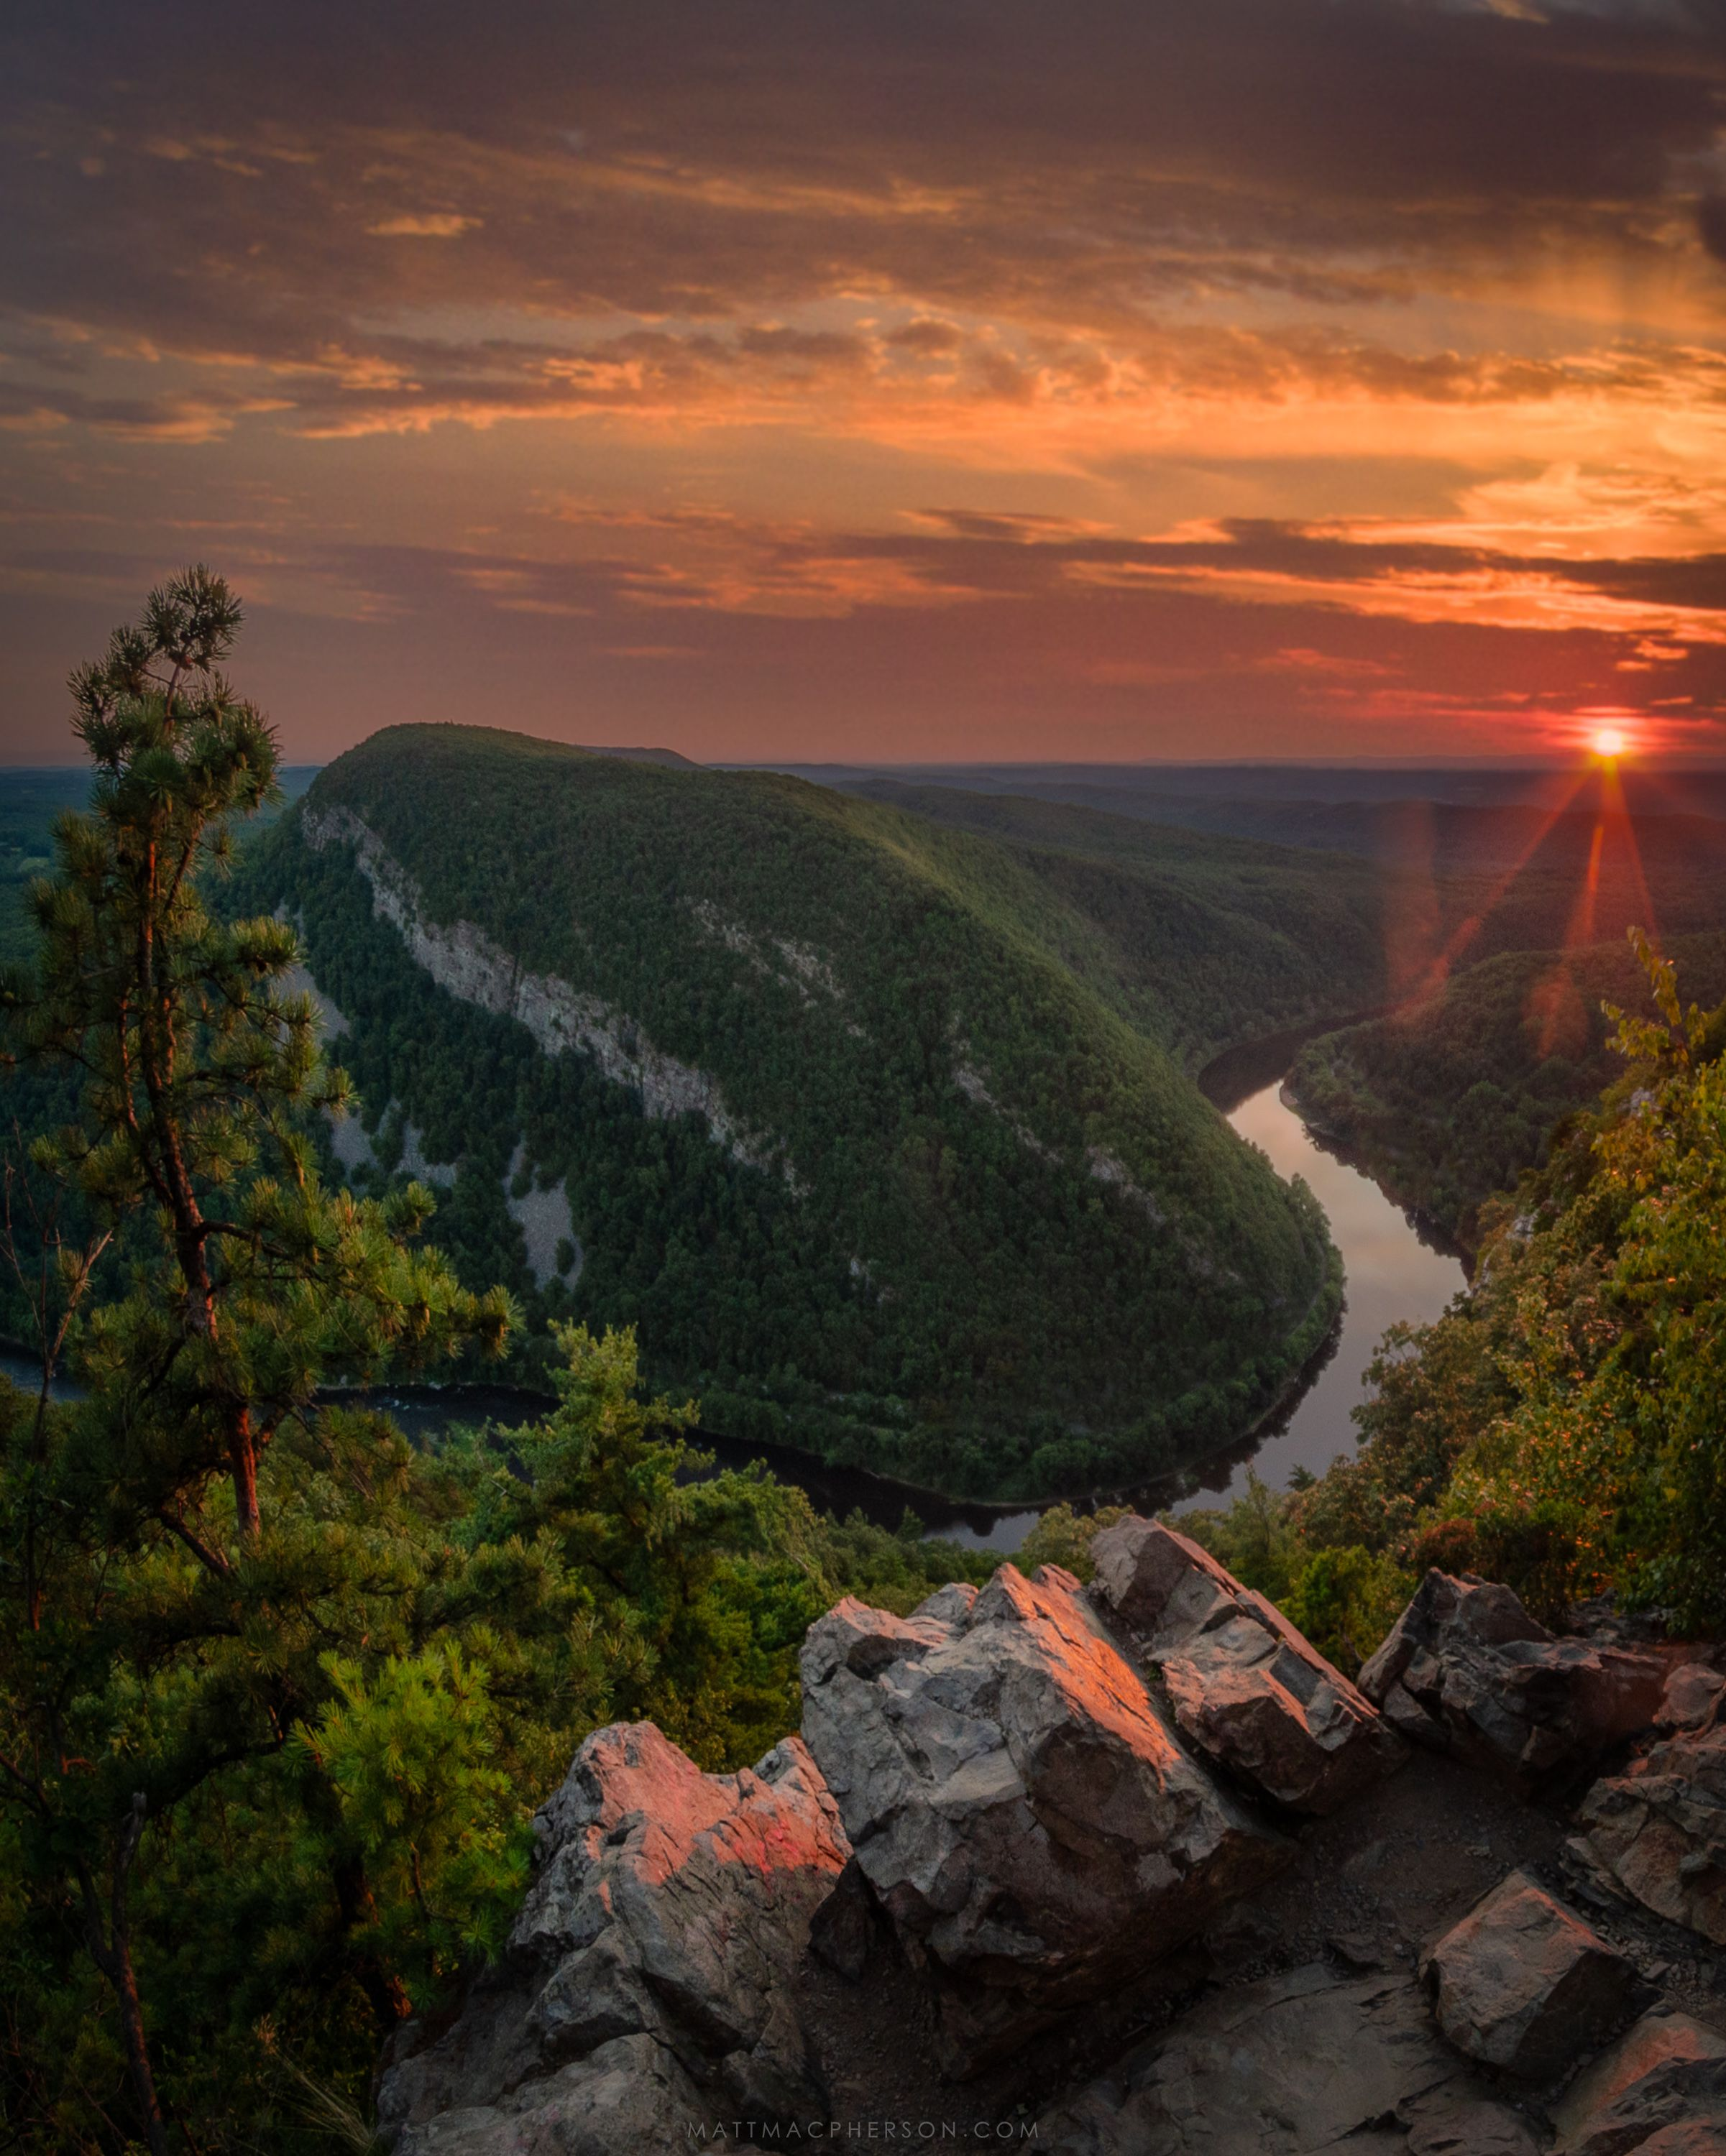 Delaware River From Mount Tammany New Jersey Beautifulnature Naturephotography Photography Earthporn Travel Delaware River Landscape Photography River